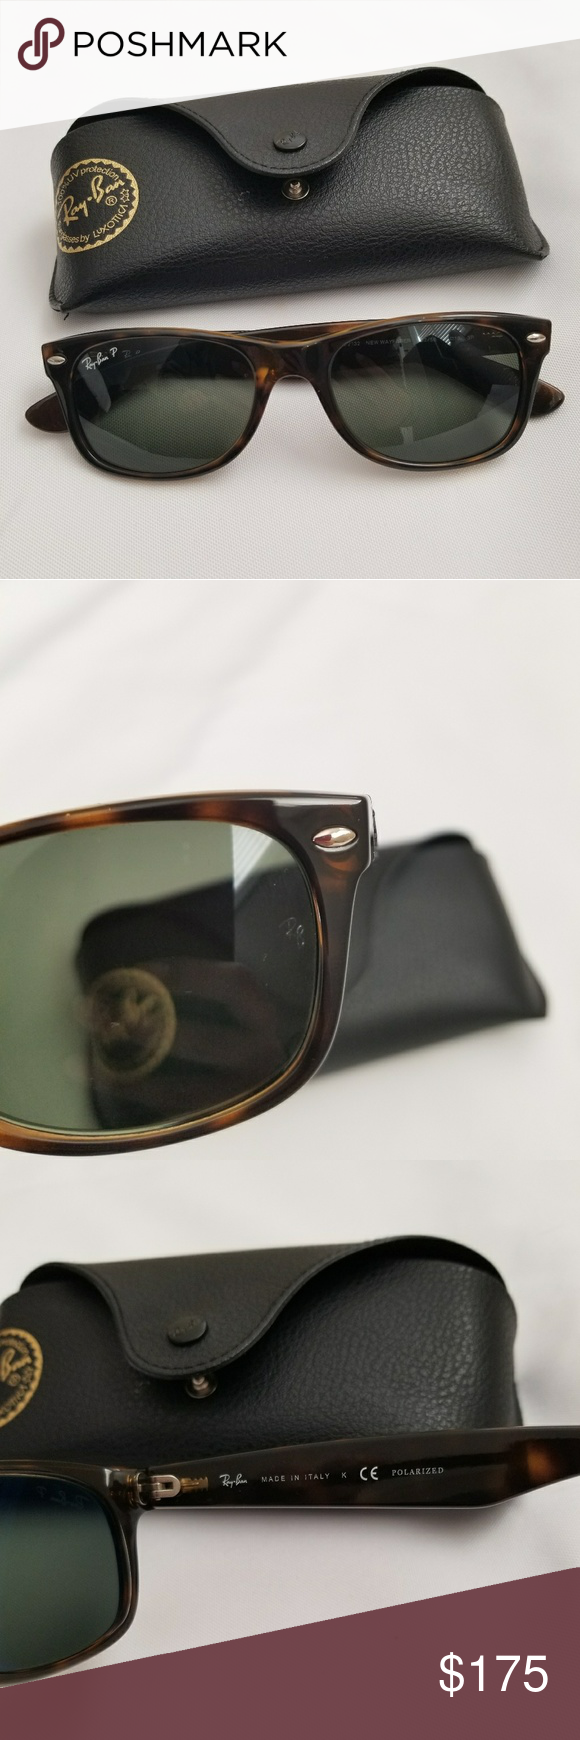 716d1e3bbf Ray-Ban New Wayfarer Classic Polarized RB2132 New wayfarer classic Model  code  RB2132 902 58 52-18 💯 authentic. (See 2nd   4th photos of the etched